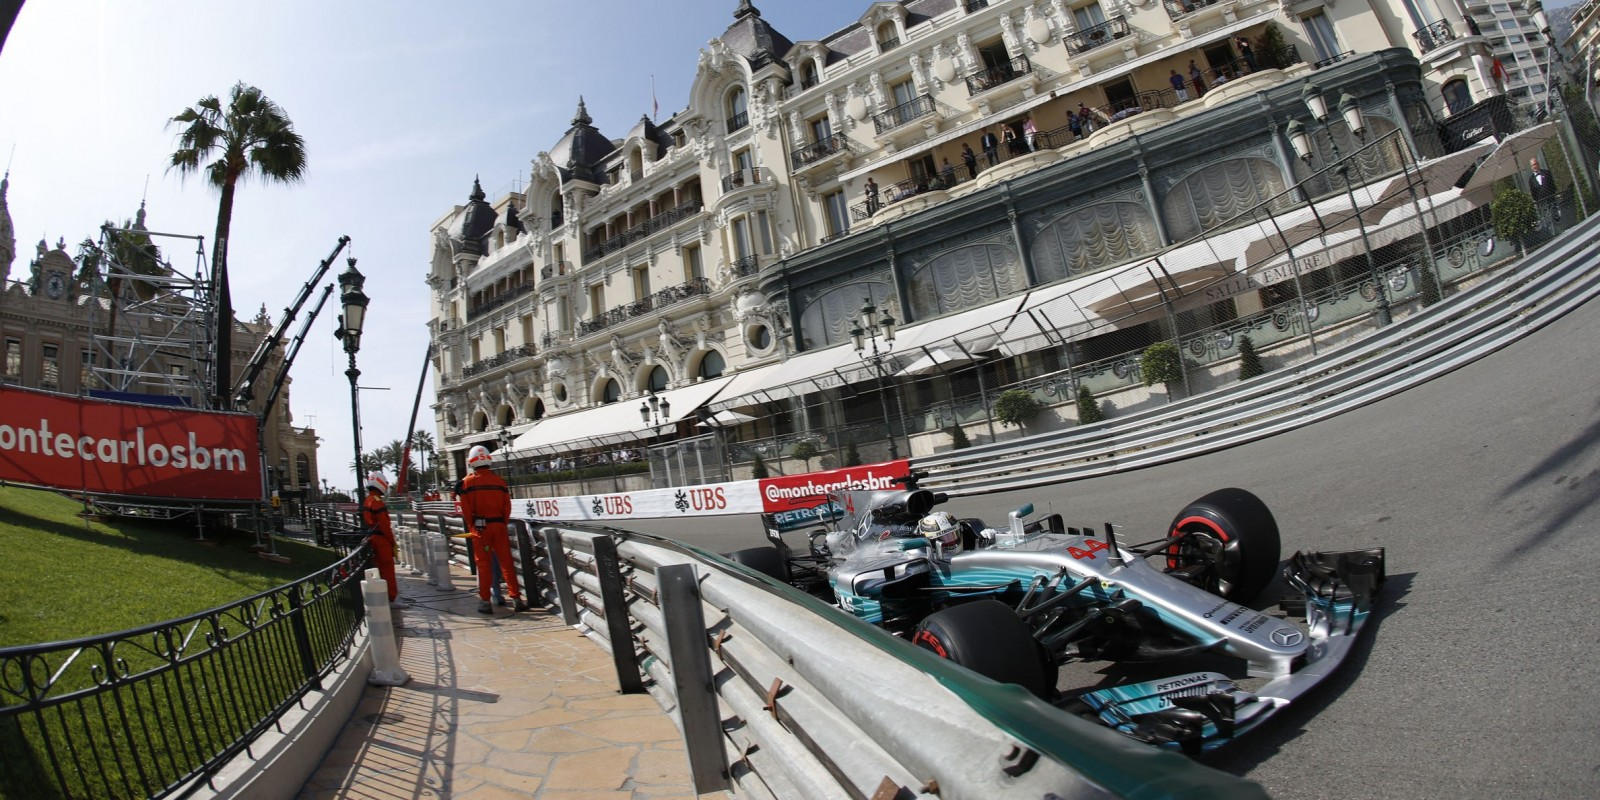 Thursday images from the 2017 Monaco Grand Prix